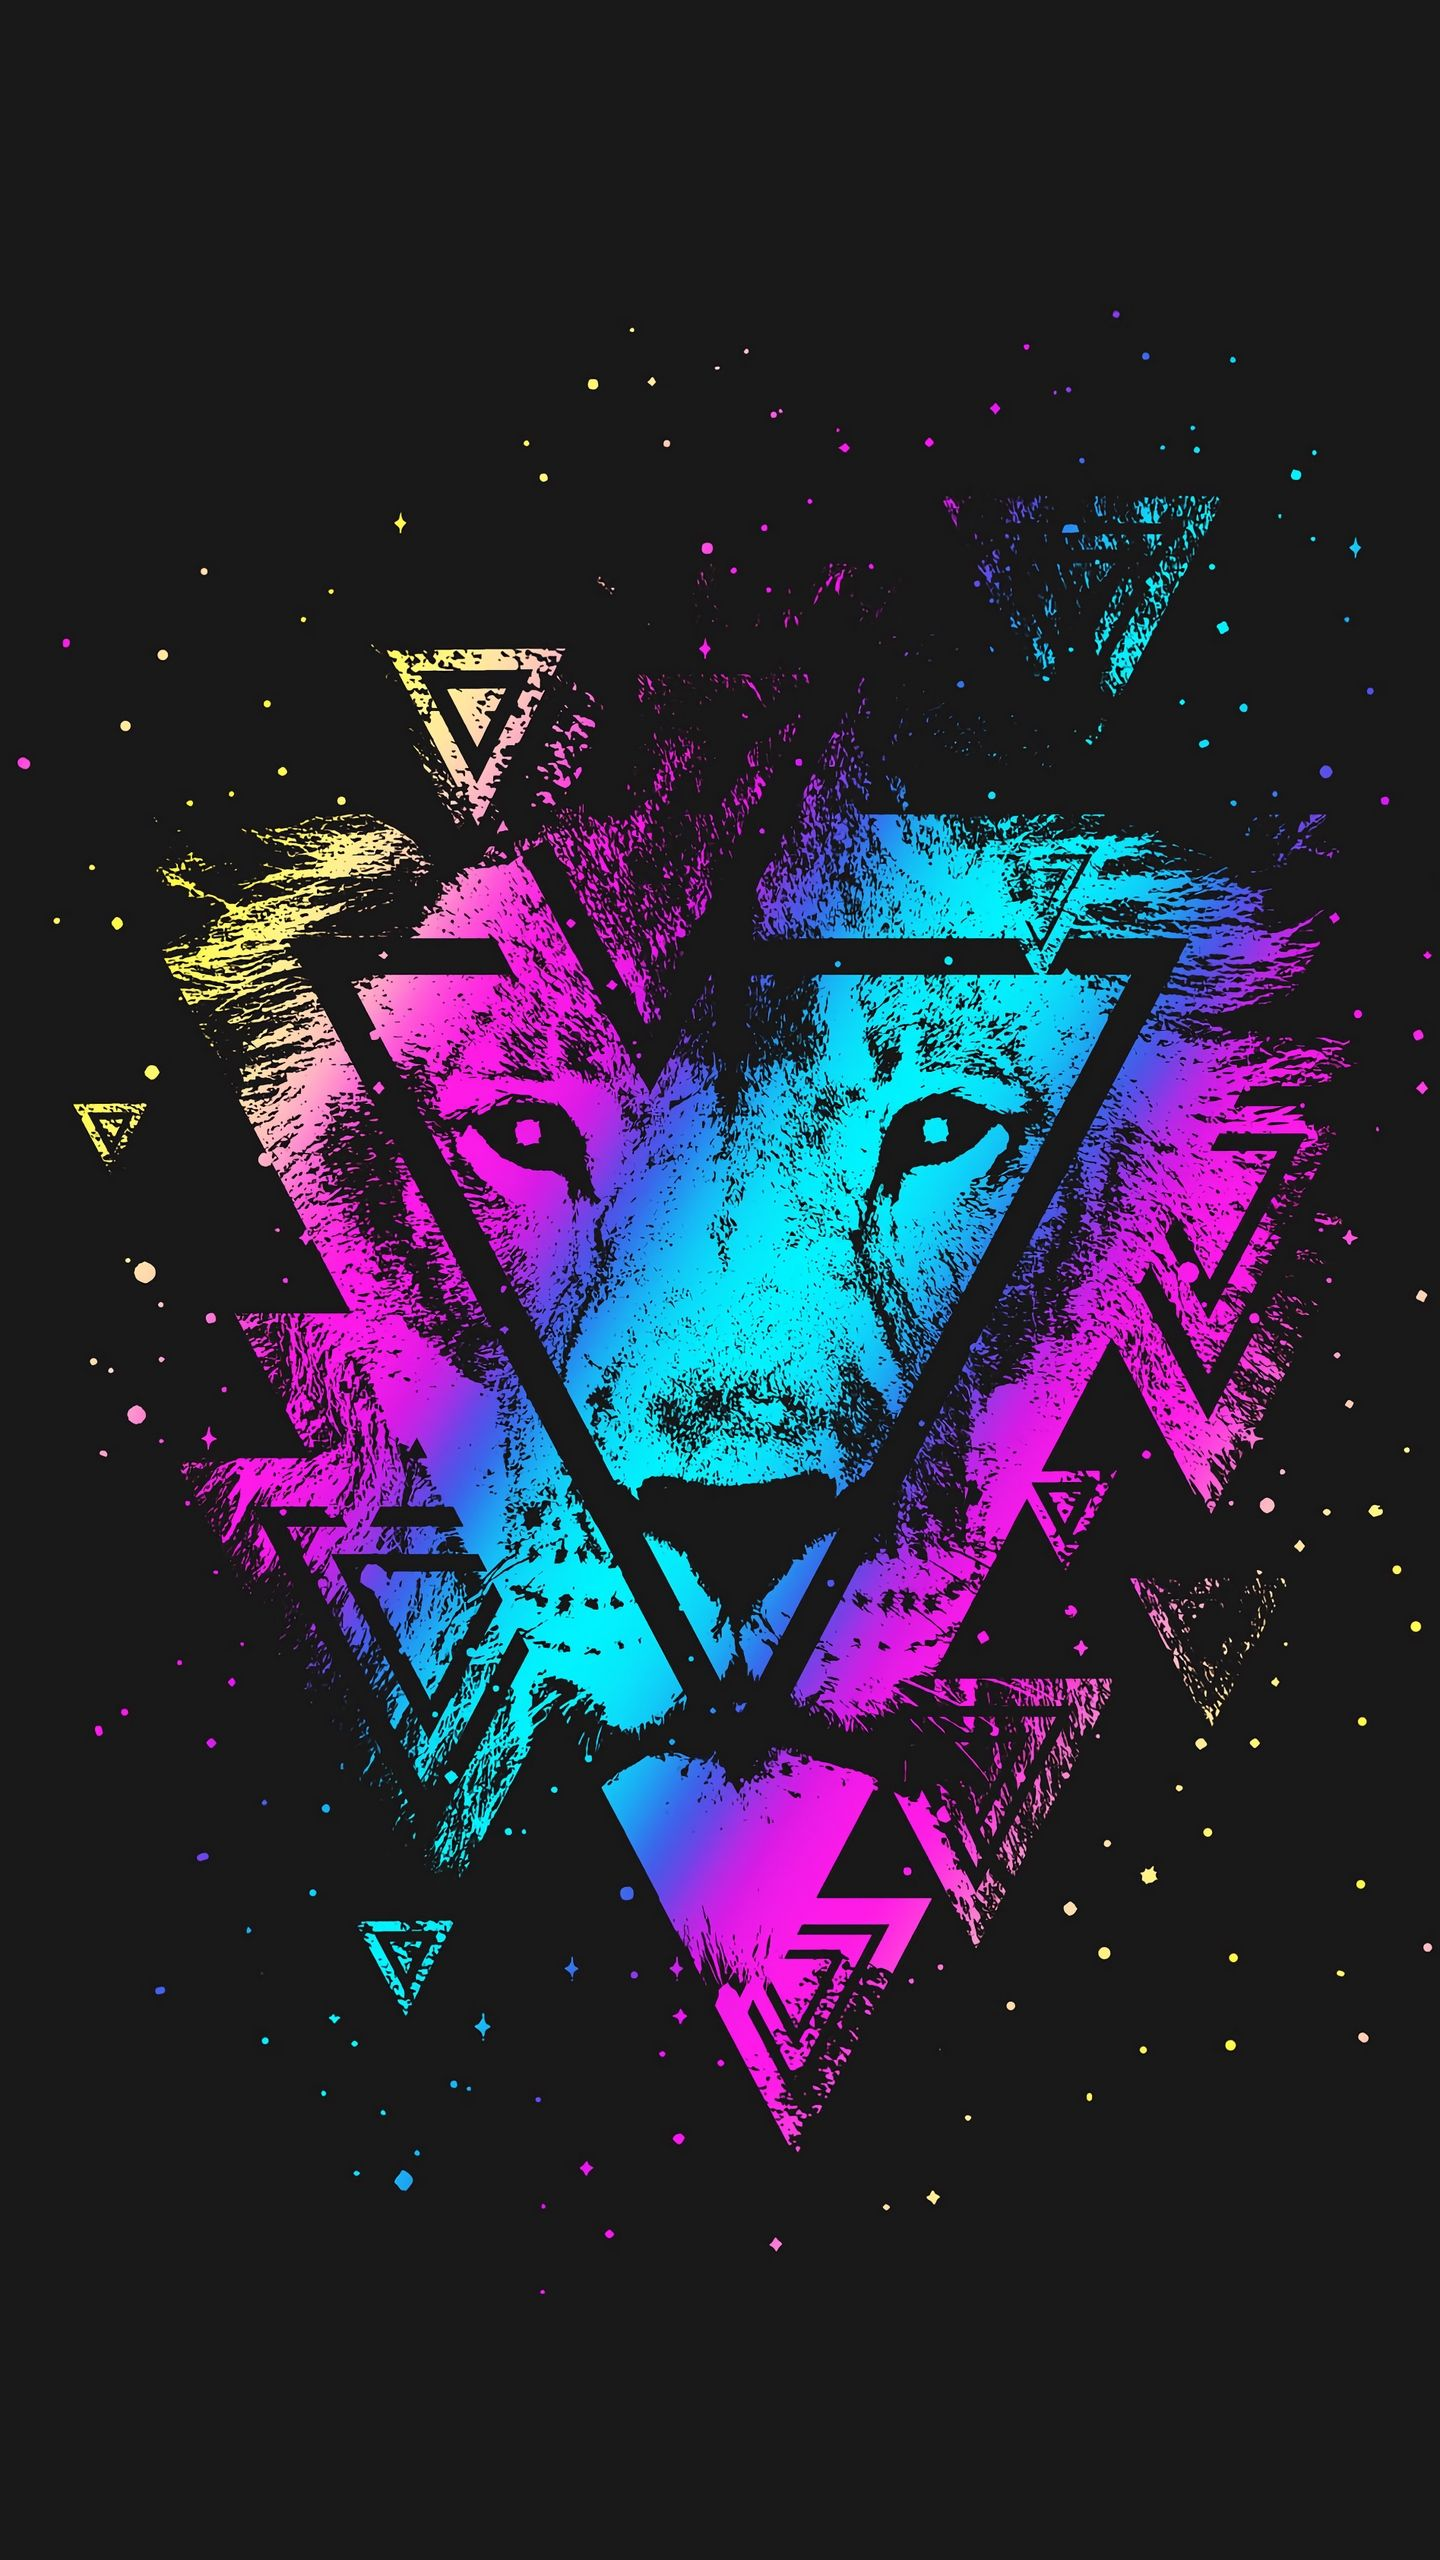 1440x2560 Download wallpaper 1440x2560 lion, colorful, triangle, art ...